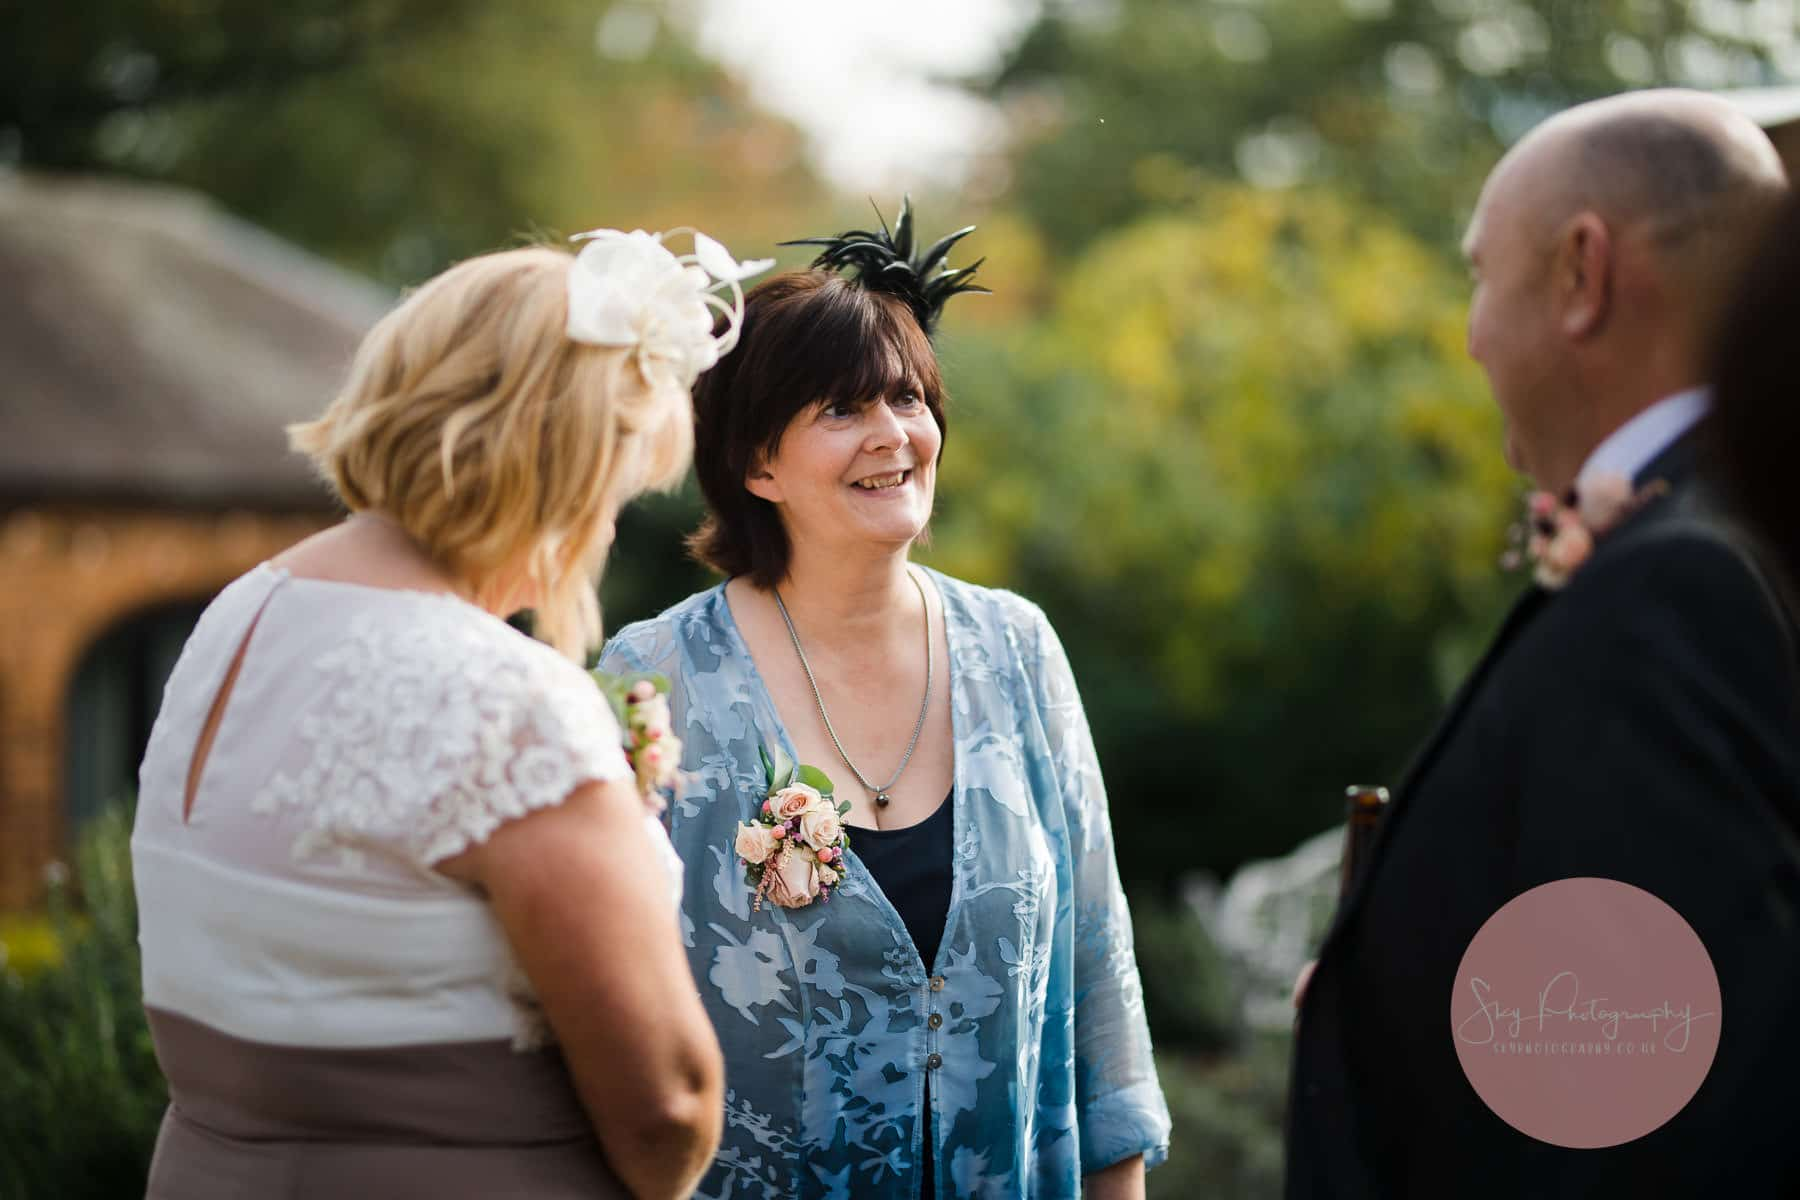 brides mother smiling and meeting guests